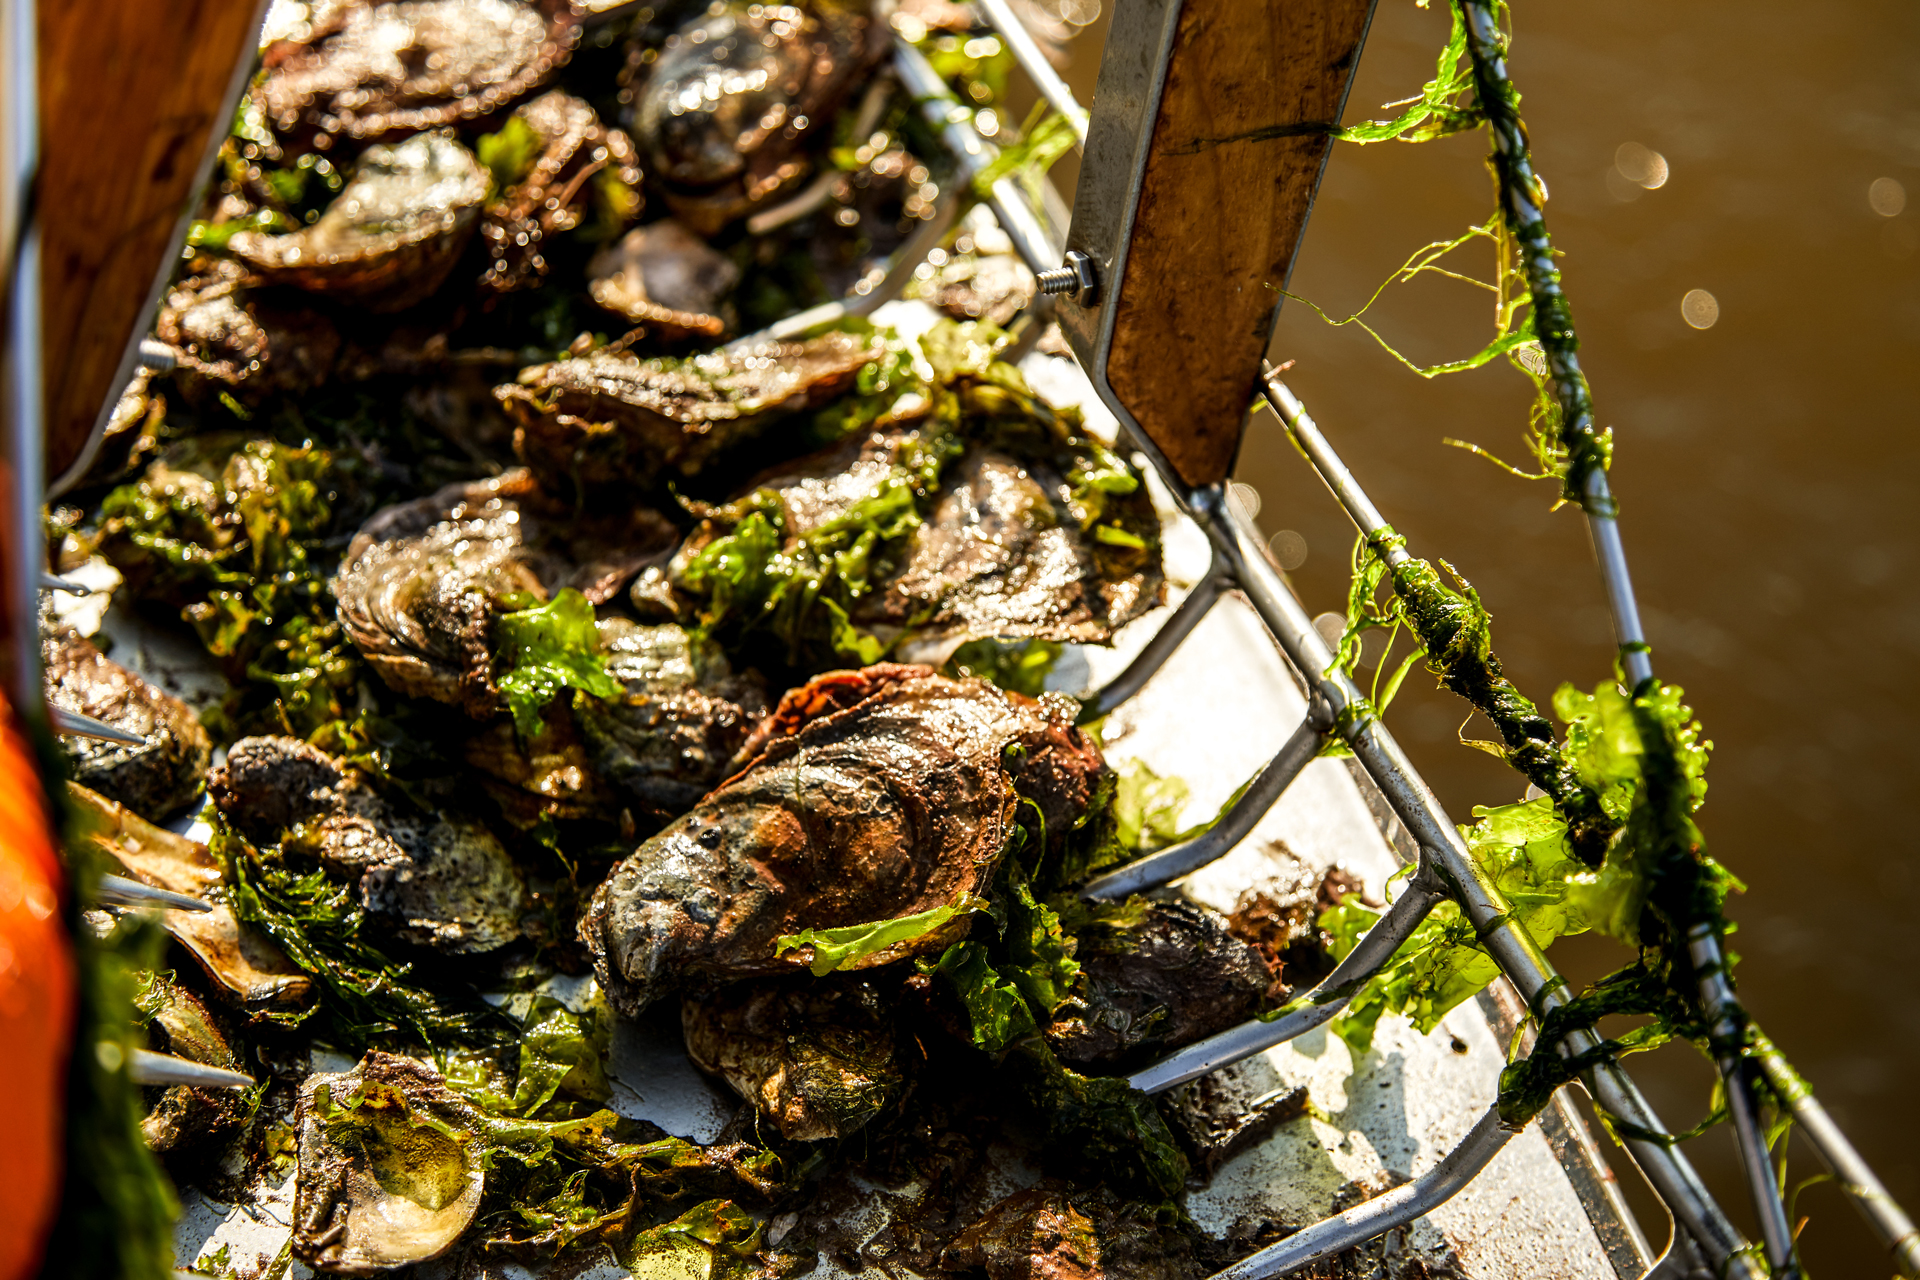 Wild Oysters coming out of the water